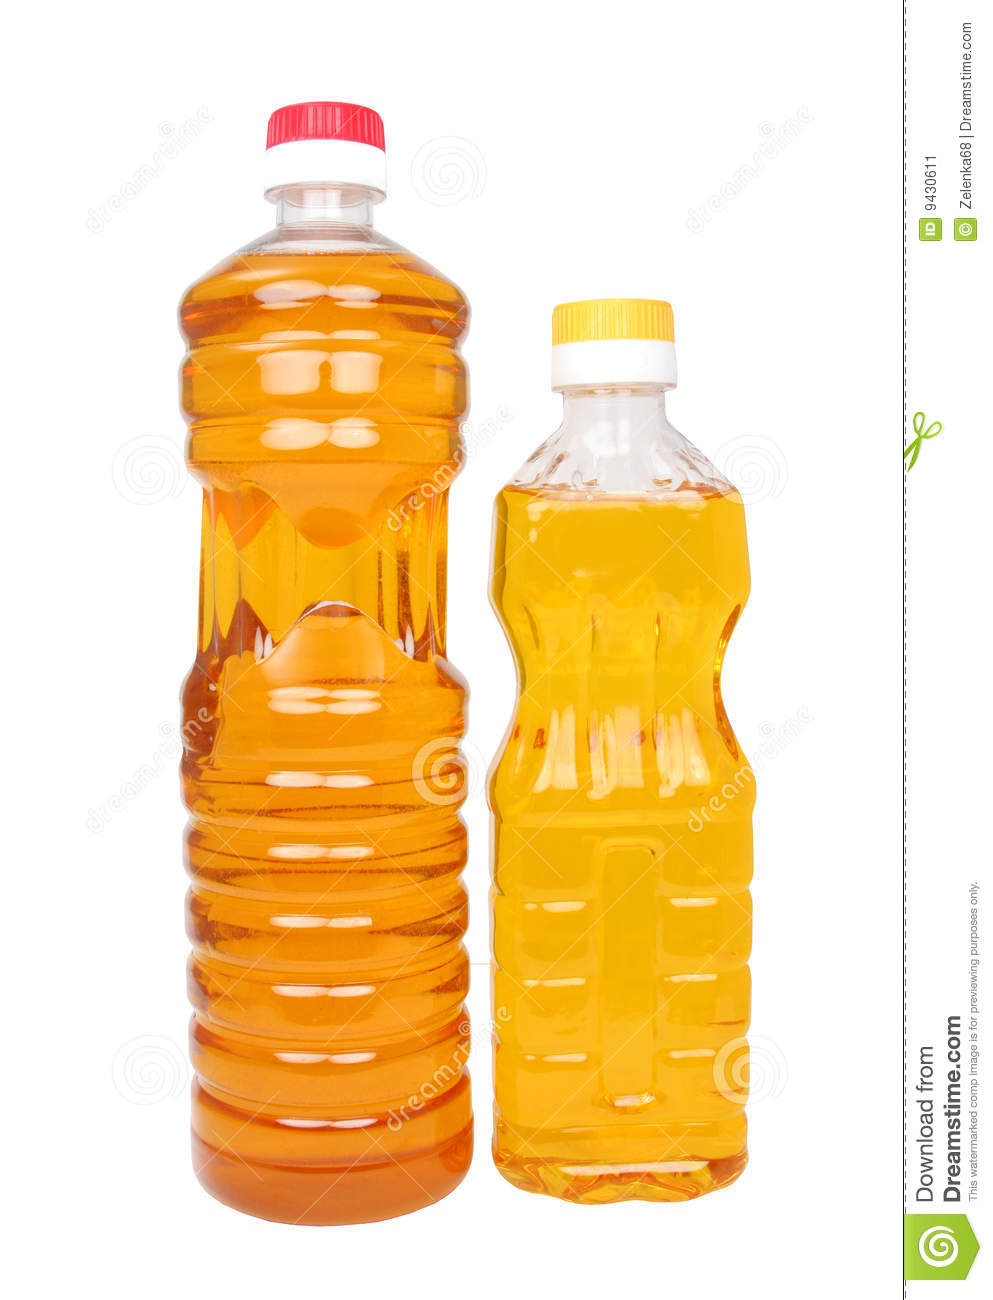 Two Bottles With Vegetable Oil Stock Image   Image  9430611